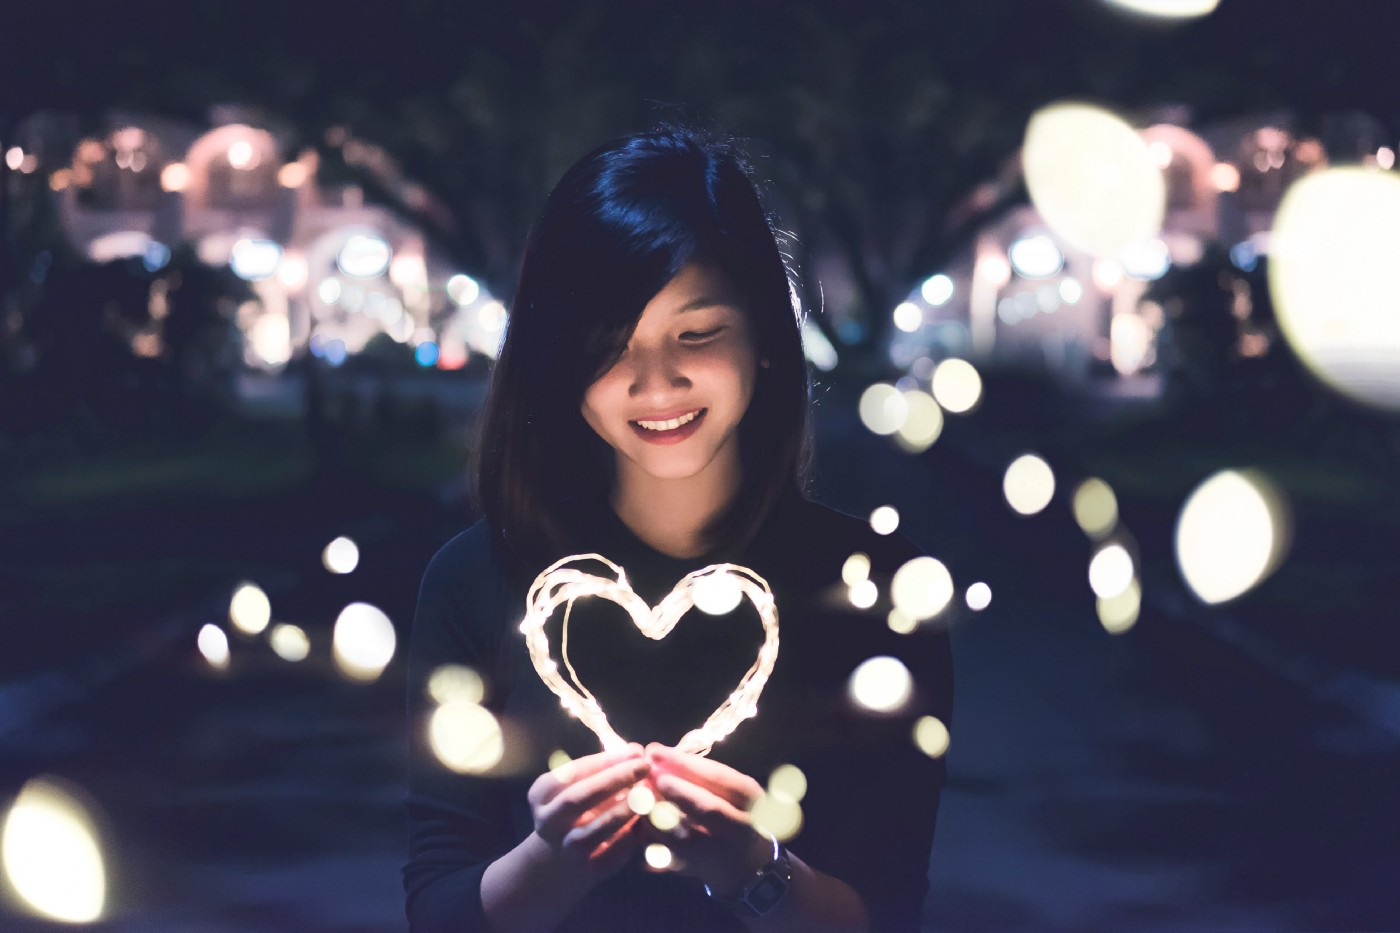 Asian woman holding up a wire heart with bright blobs of light behind her and lights in the darkness in the background